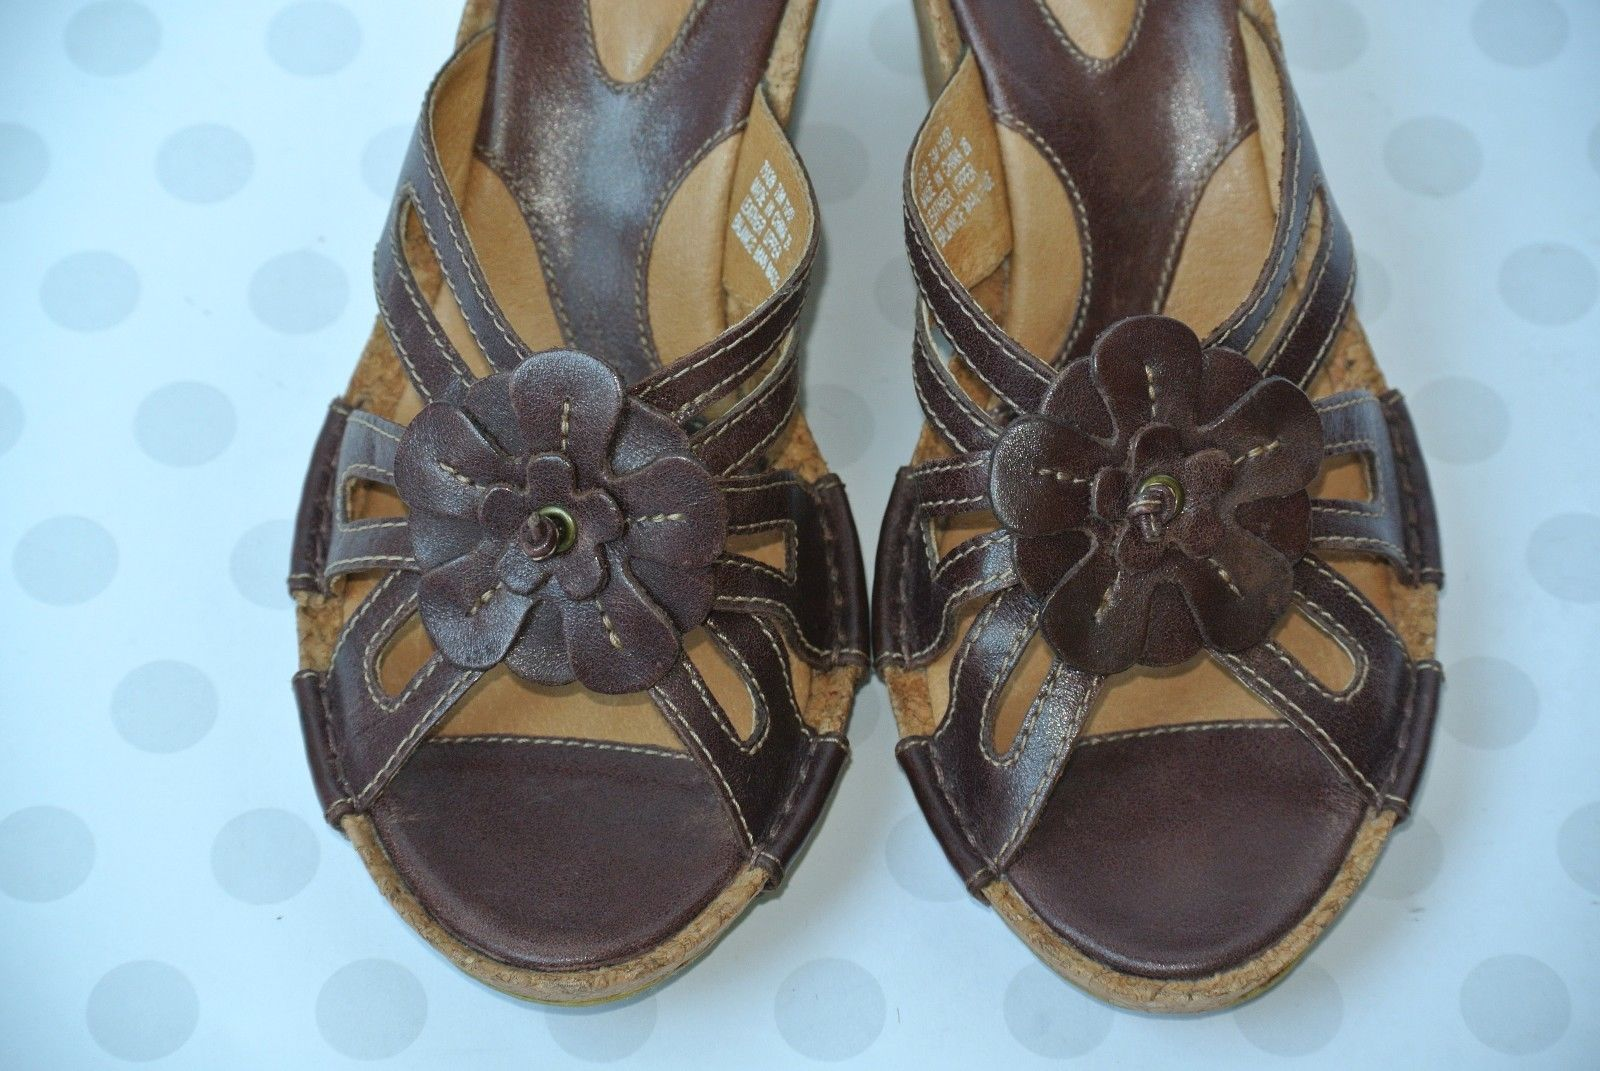 NEW Clarks Artisan Womens Sz 7.5 M Brown Leather Flower Wedge Strappy Sandals